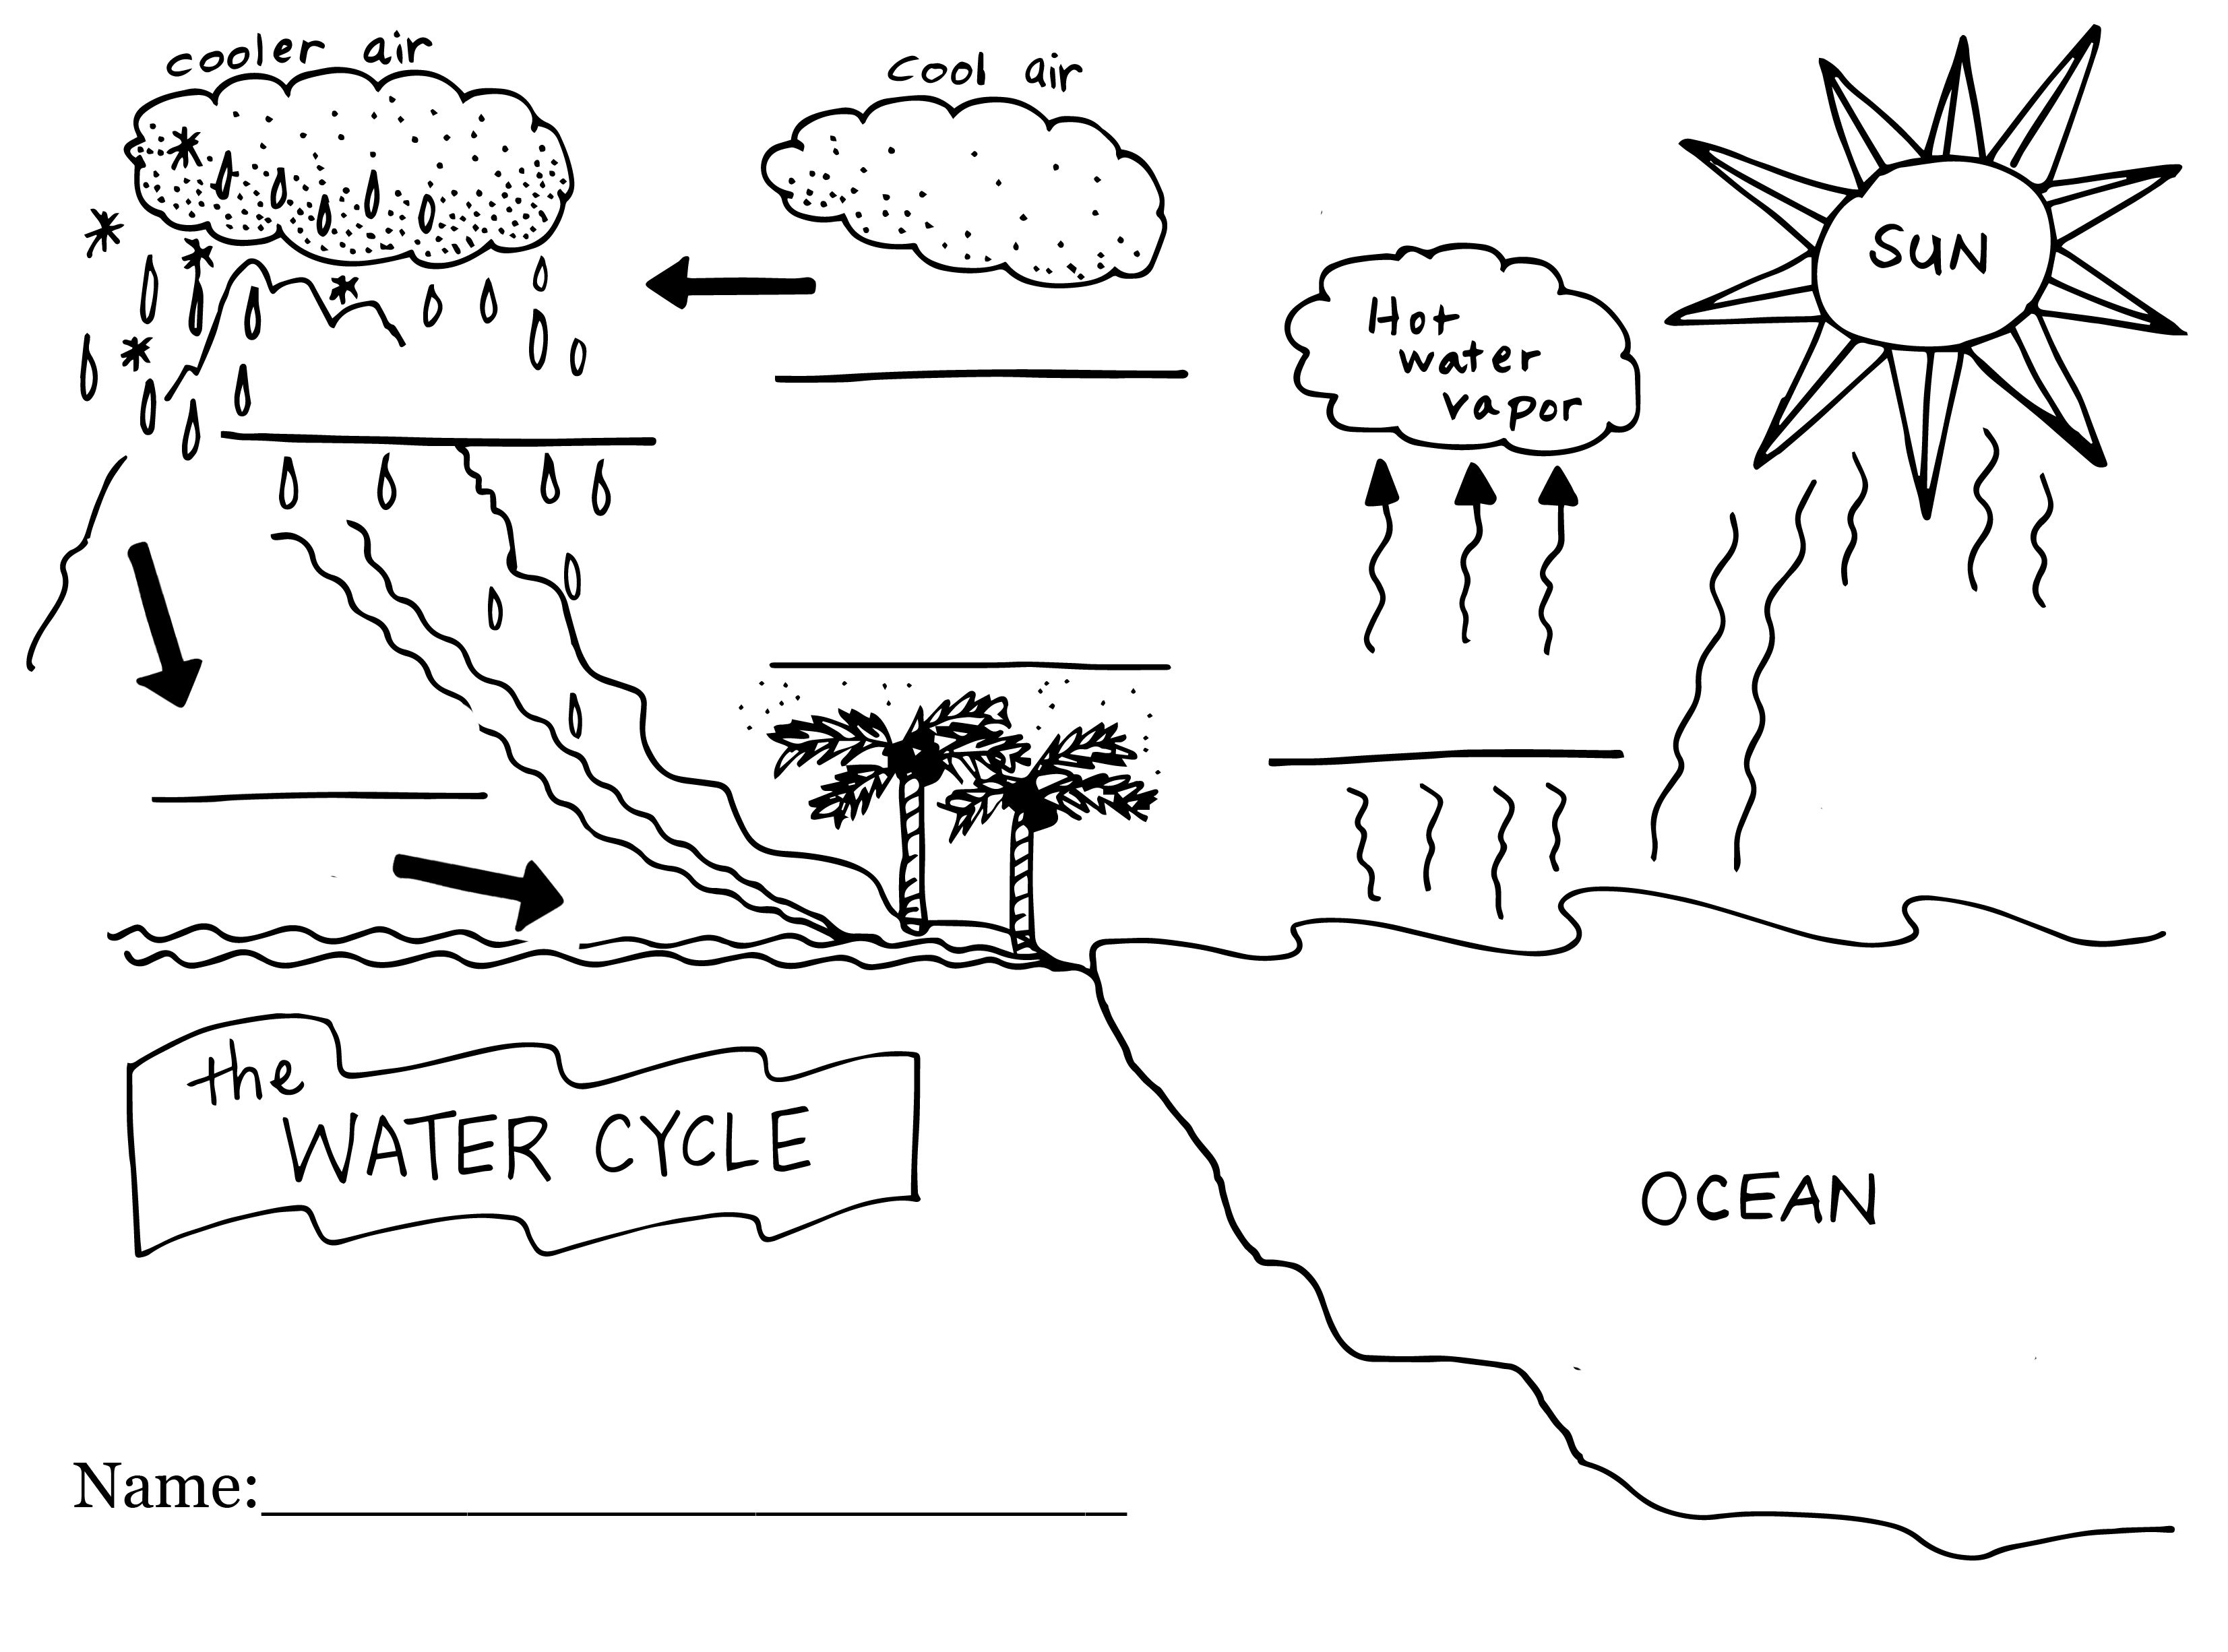 Water Cycle Coloring Pages Cd357 Reading Meganghurley Ed 554